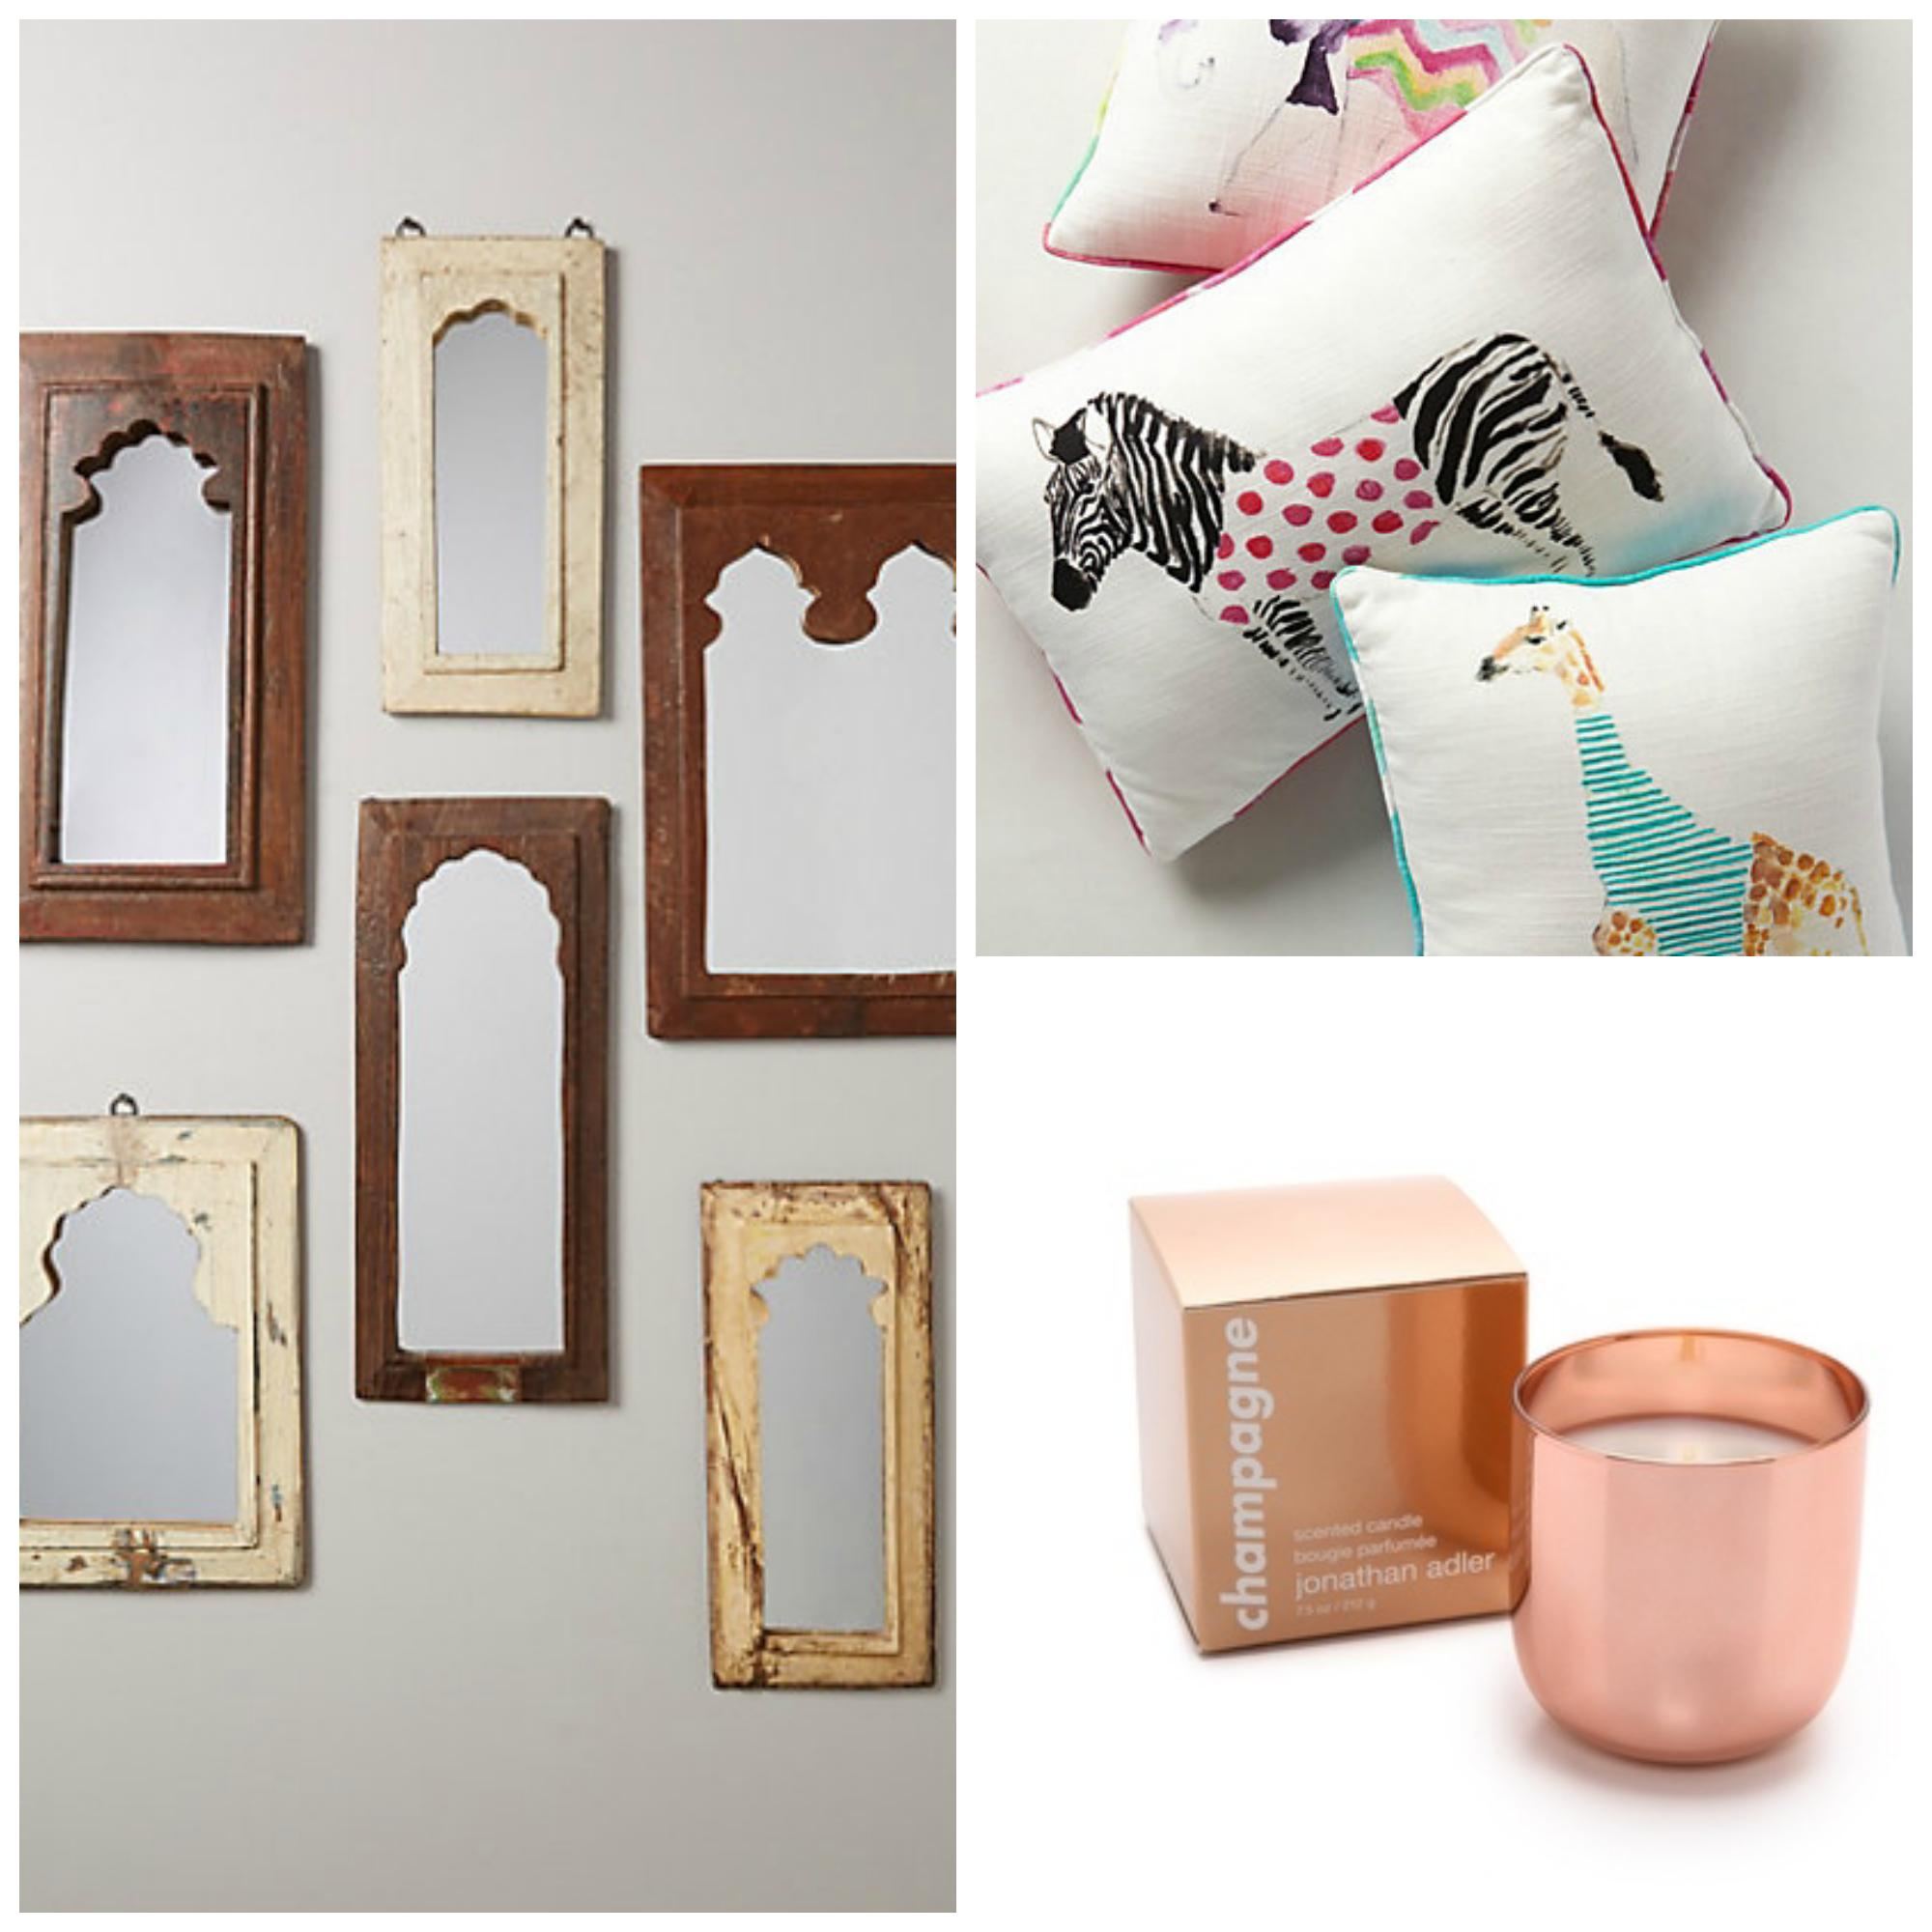 Spruce up your dorm room with cute and affordable decor essentials: http://t.co/hQpbfvwuYp http://t.co/th1k7KQRRz